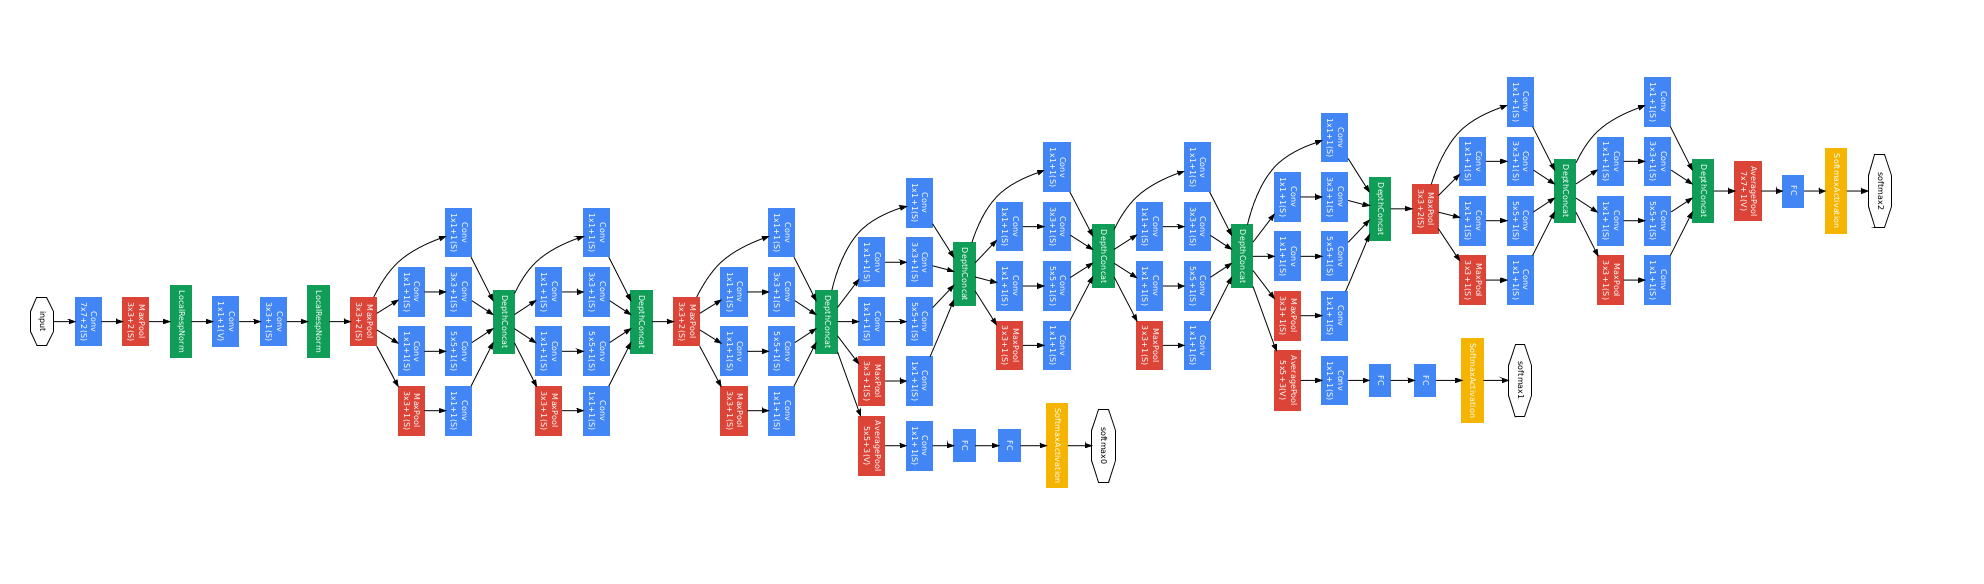 googlenet_diagram